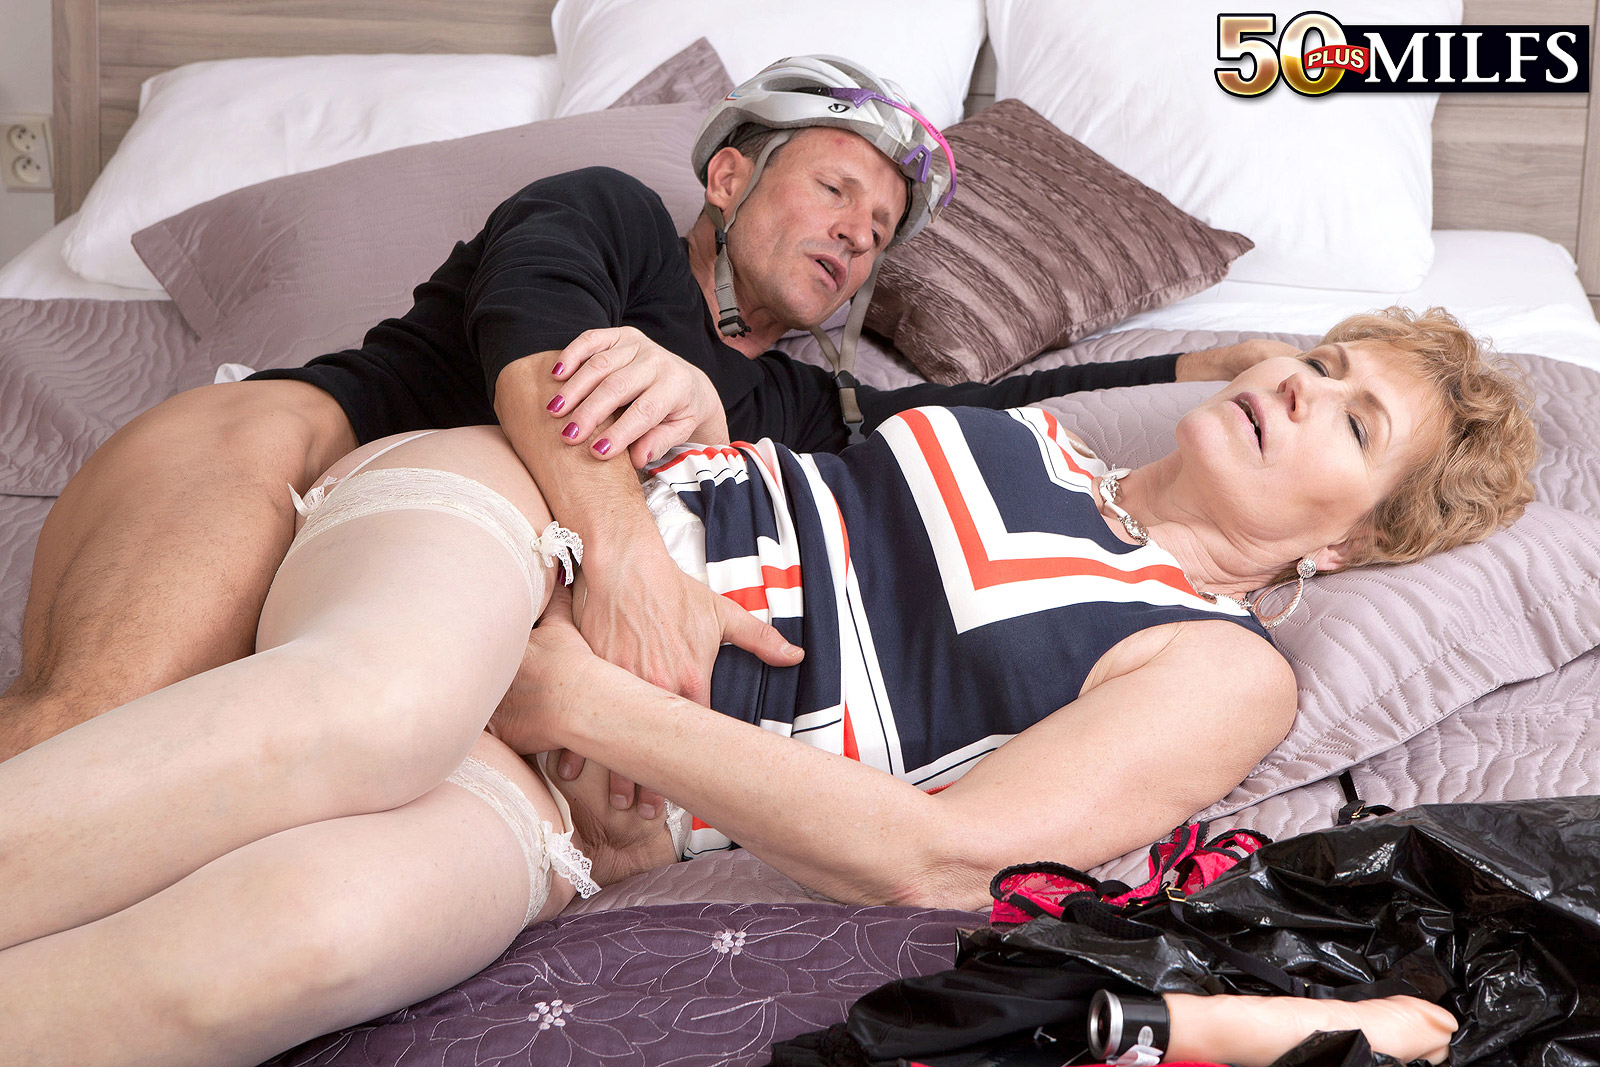 Helping Dildo Lady 115